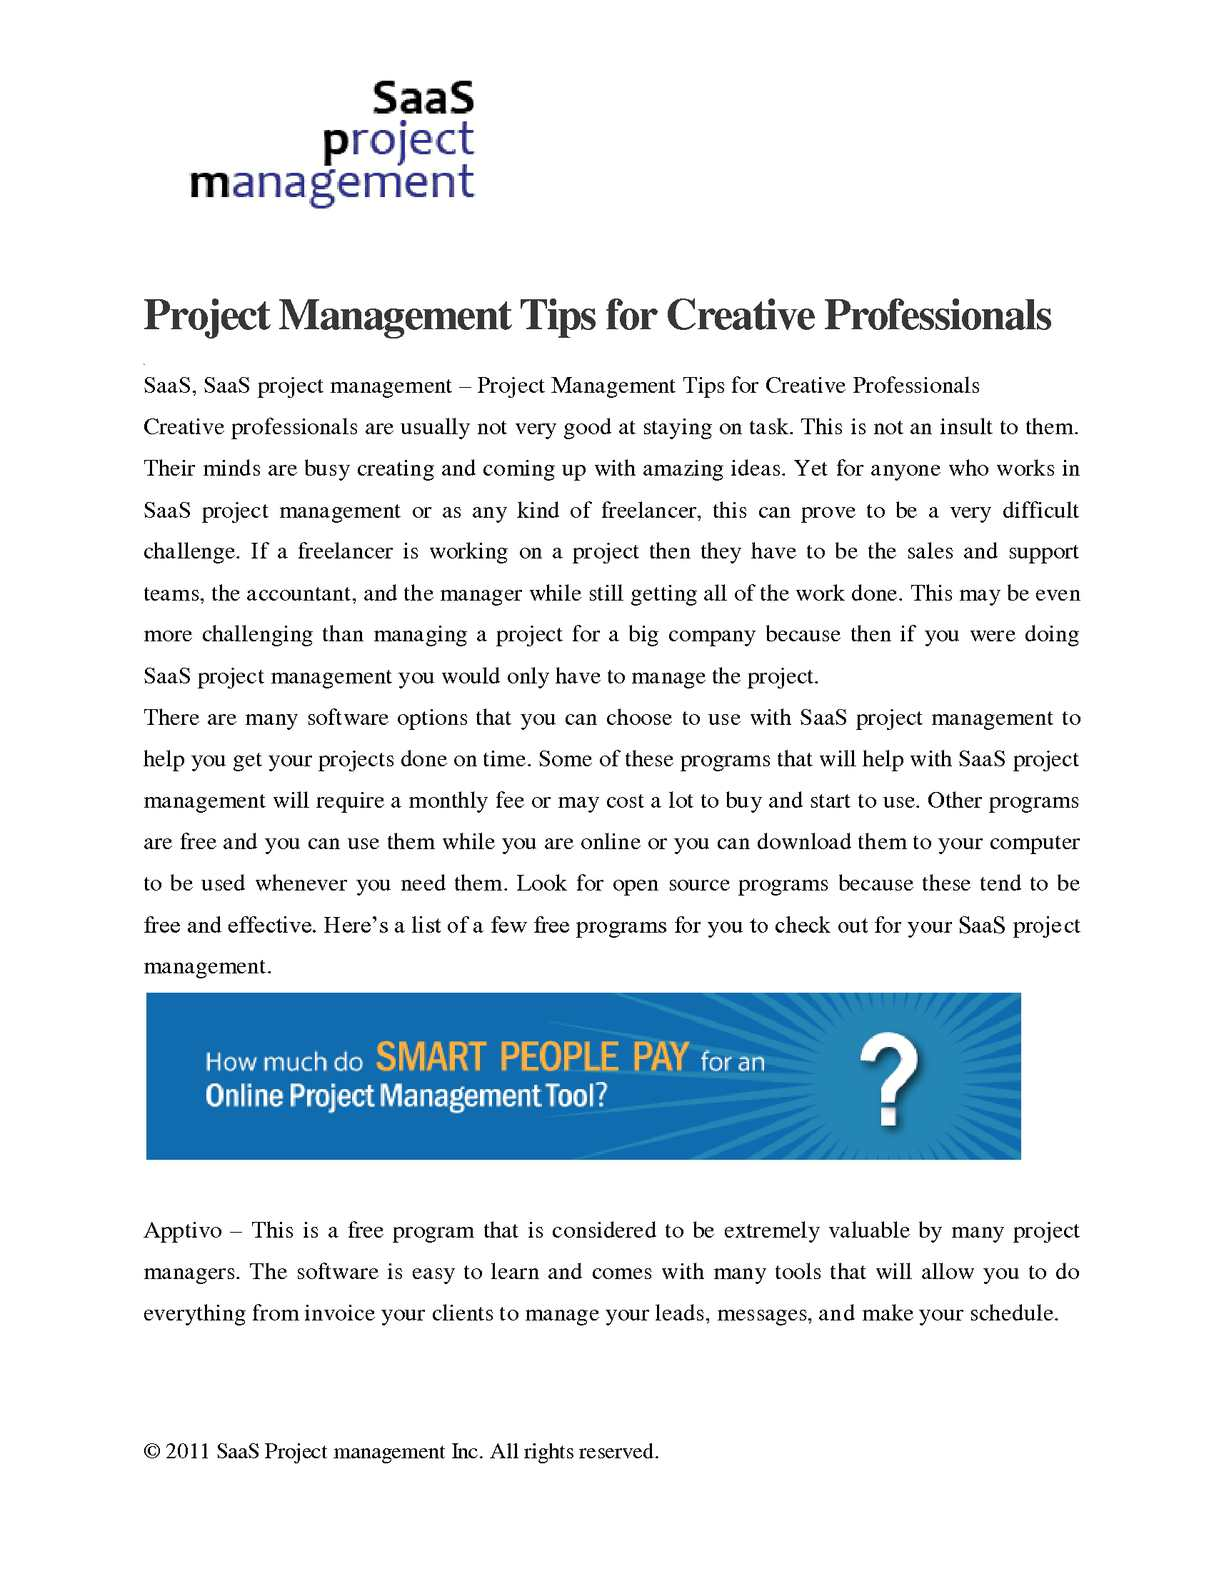 Calamo Project Management Tips For Creative Professionals